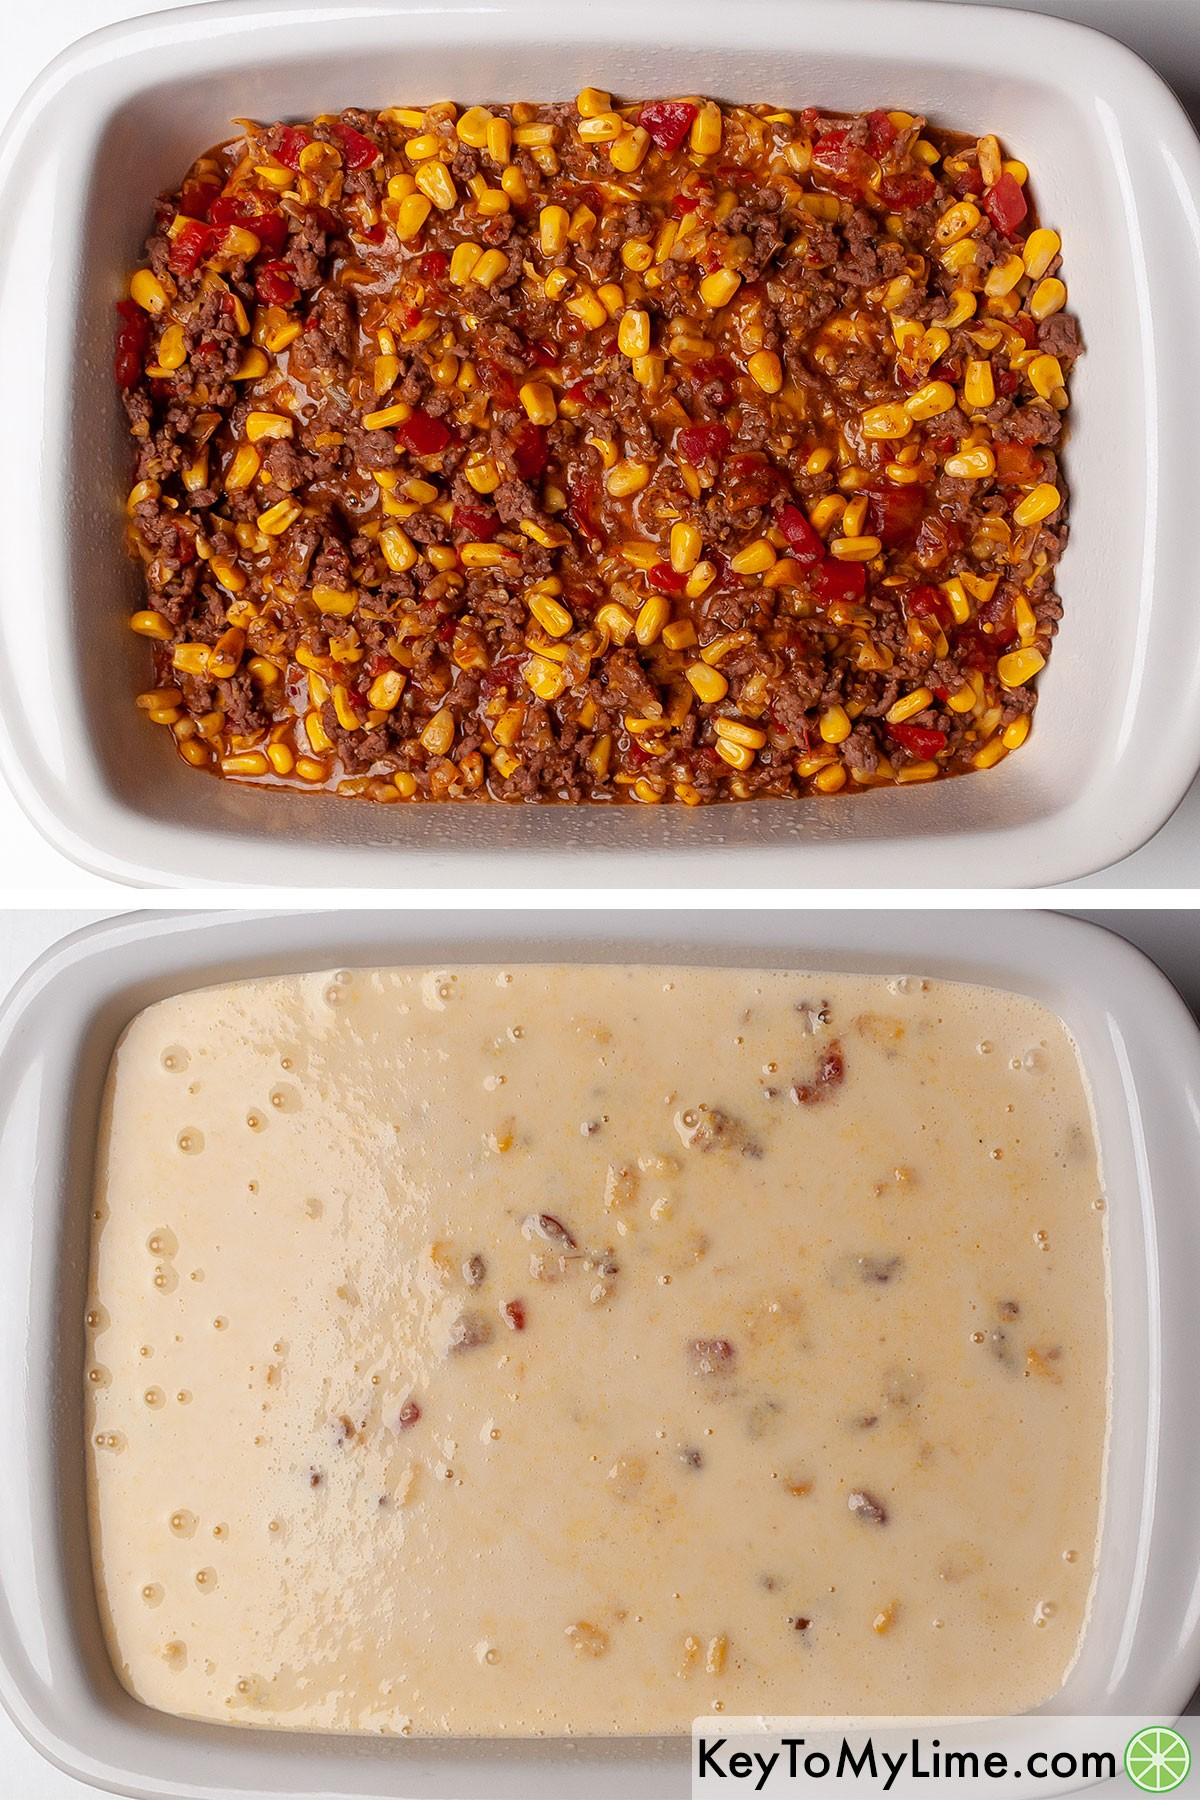 Layering Mexican ground beef in a casserole dish, then pouring cornbread batter on top.